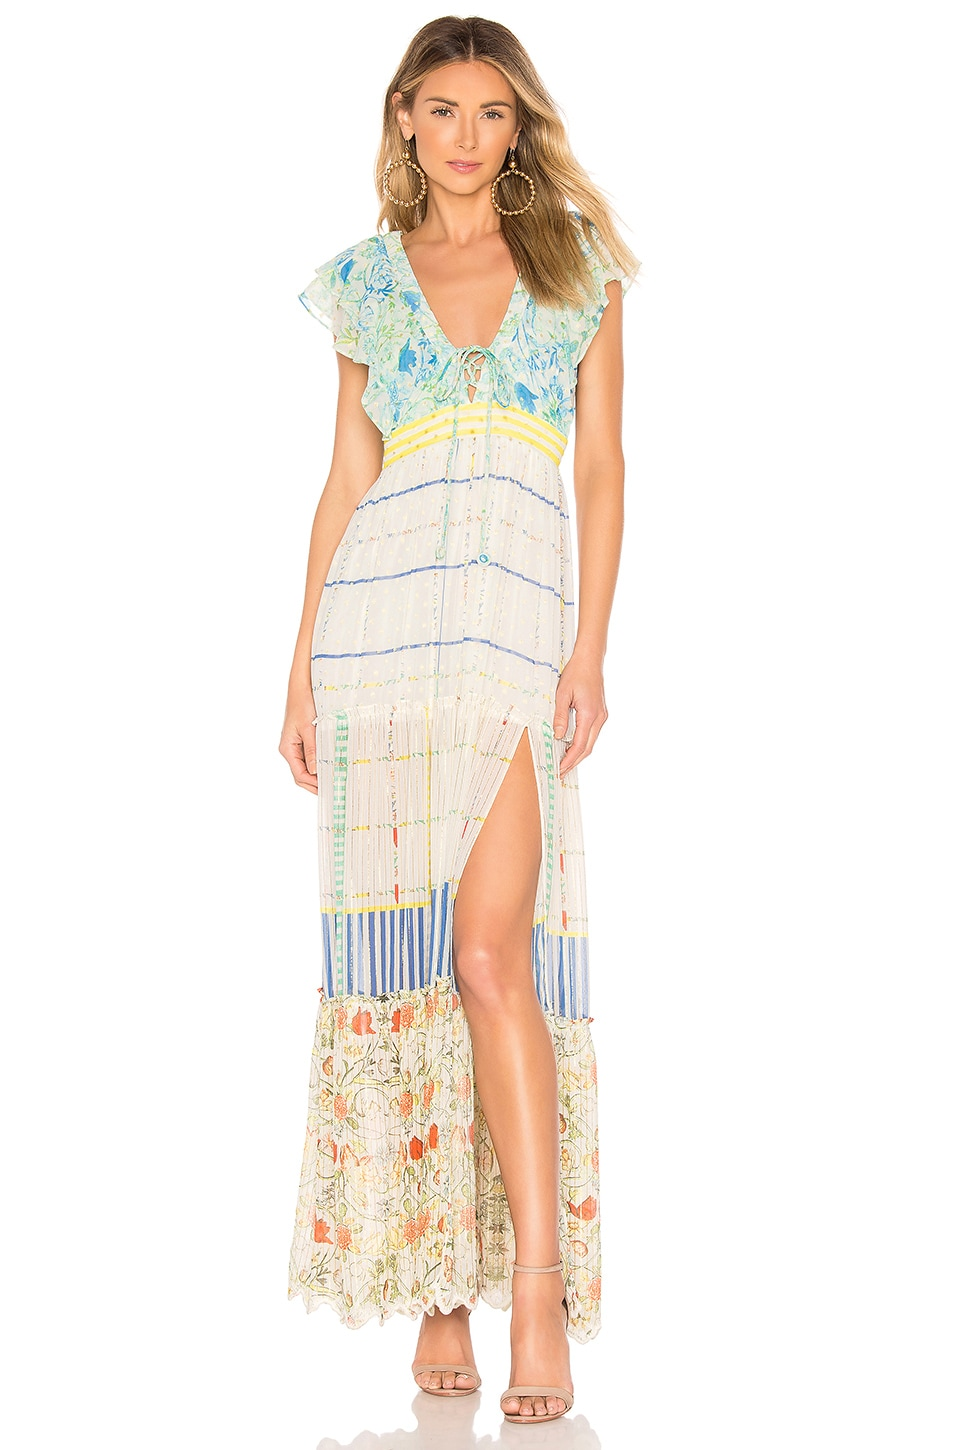 HEMANT AND NANDITA Odyssey Maxi Dress in Multi Color